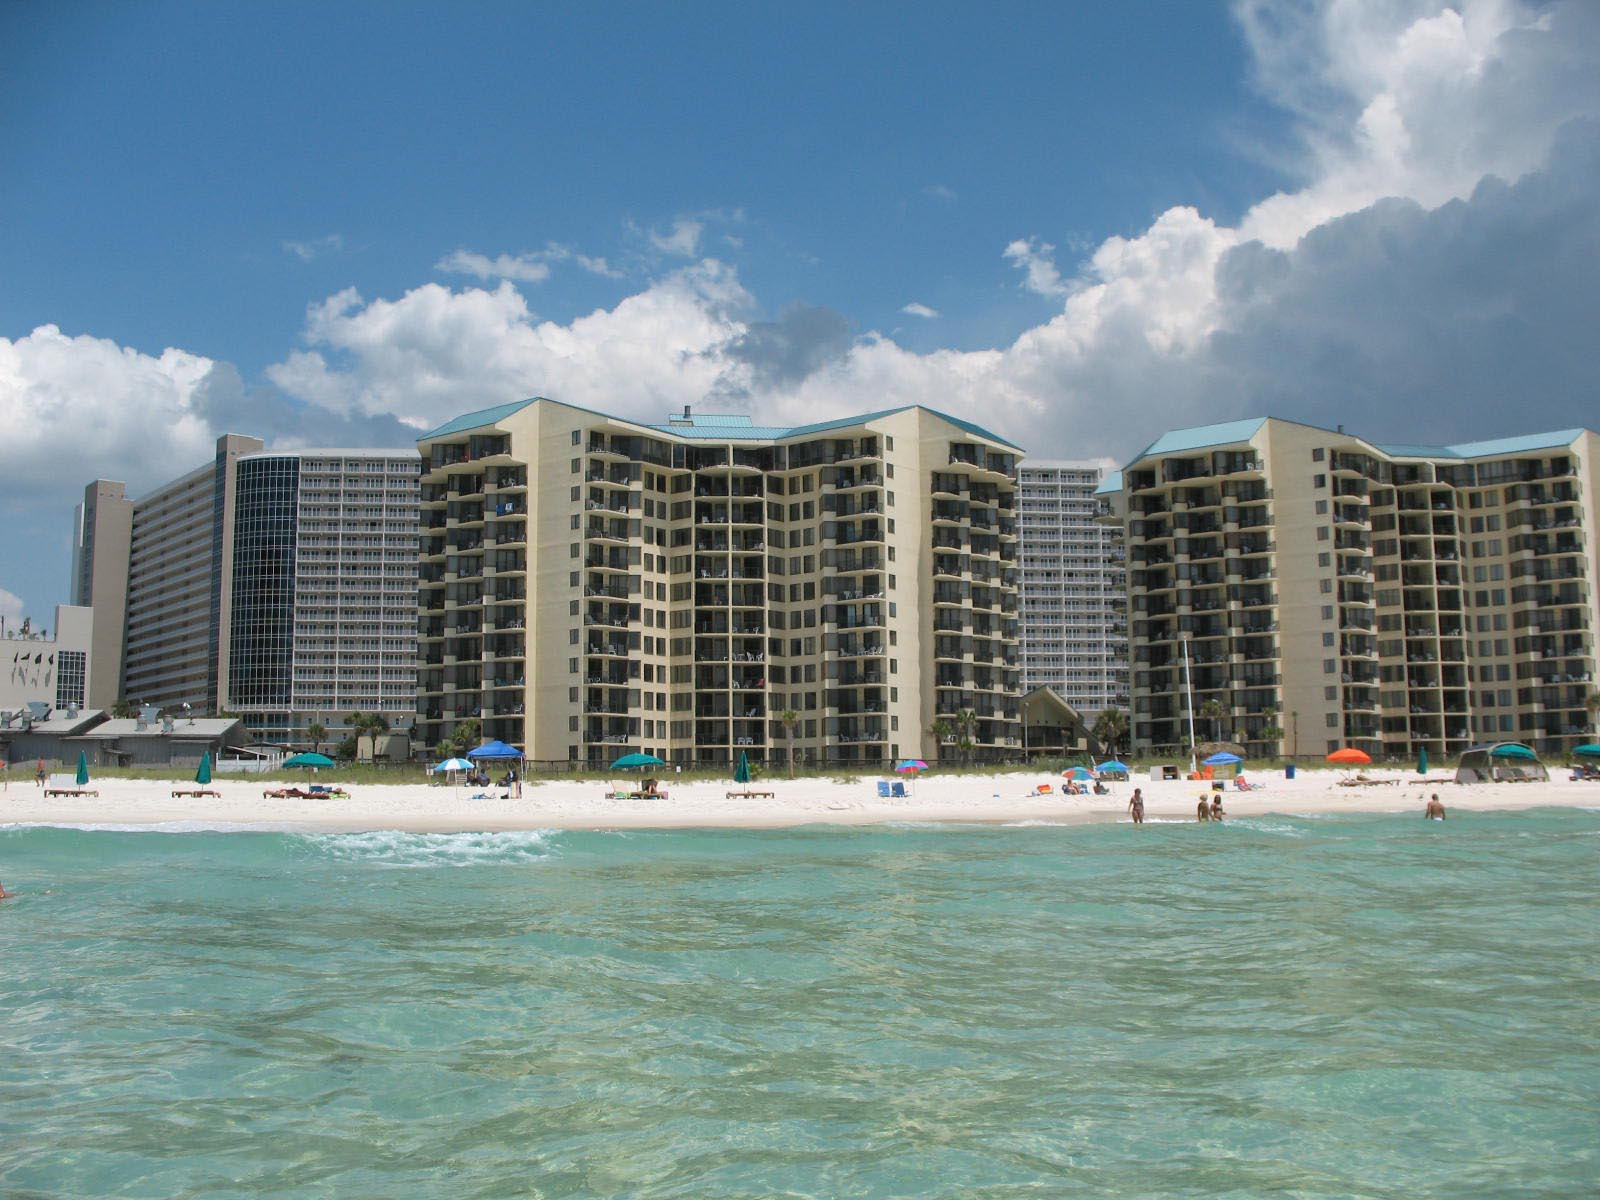 Condo Rentals at The Sunbird Resort